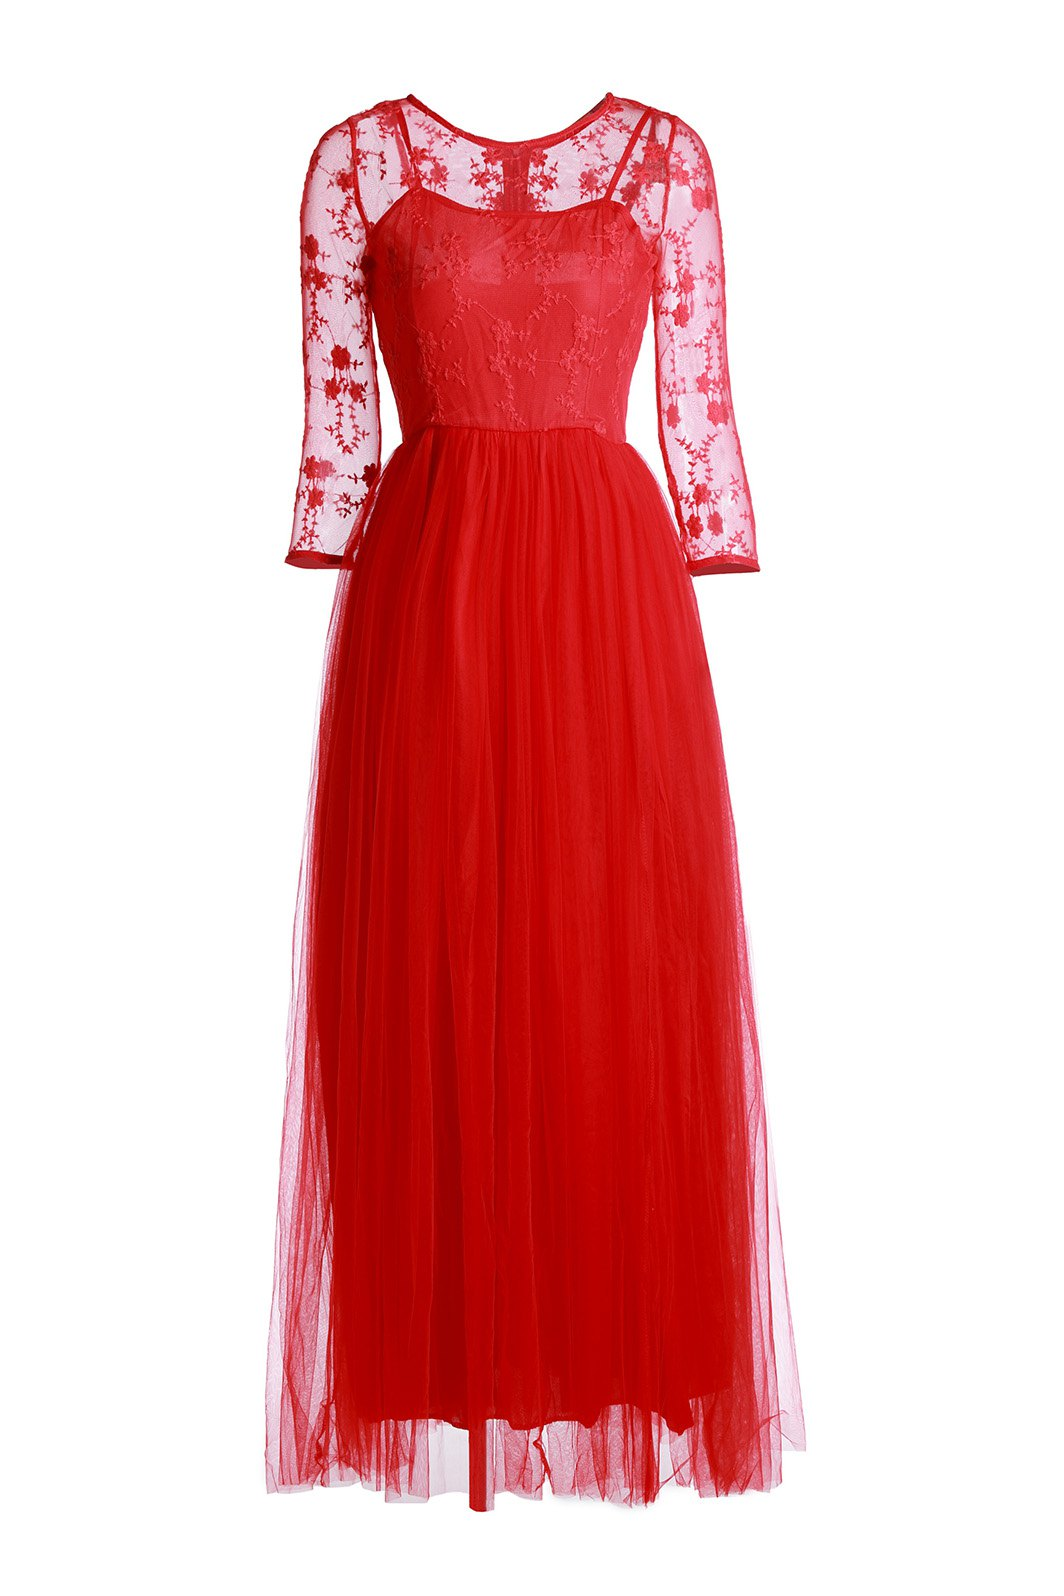 Elegant Round Neck Floral Embroidery Spliced Voile 3/4 Sleeve Women's Maxi Dress - RED XL